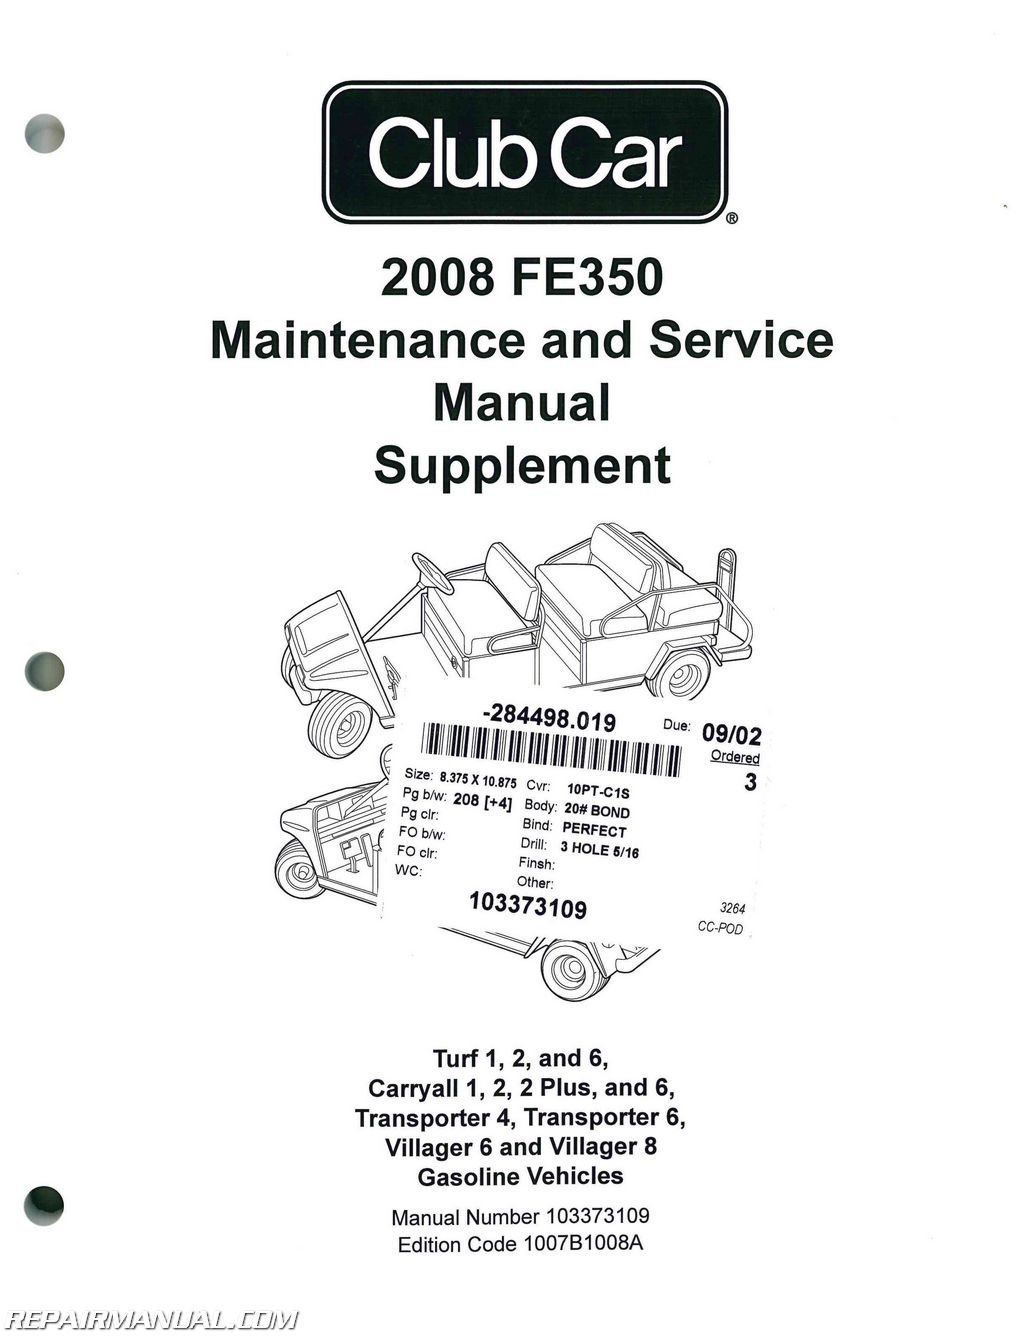 103373109 2008 club car fe350 gasoline maintenance golf cart service manual  supplement paperback – 2004